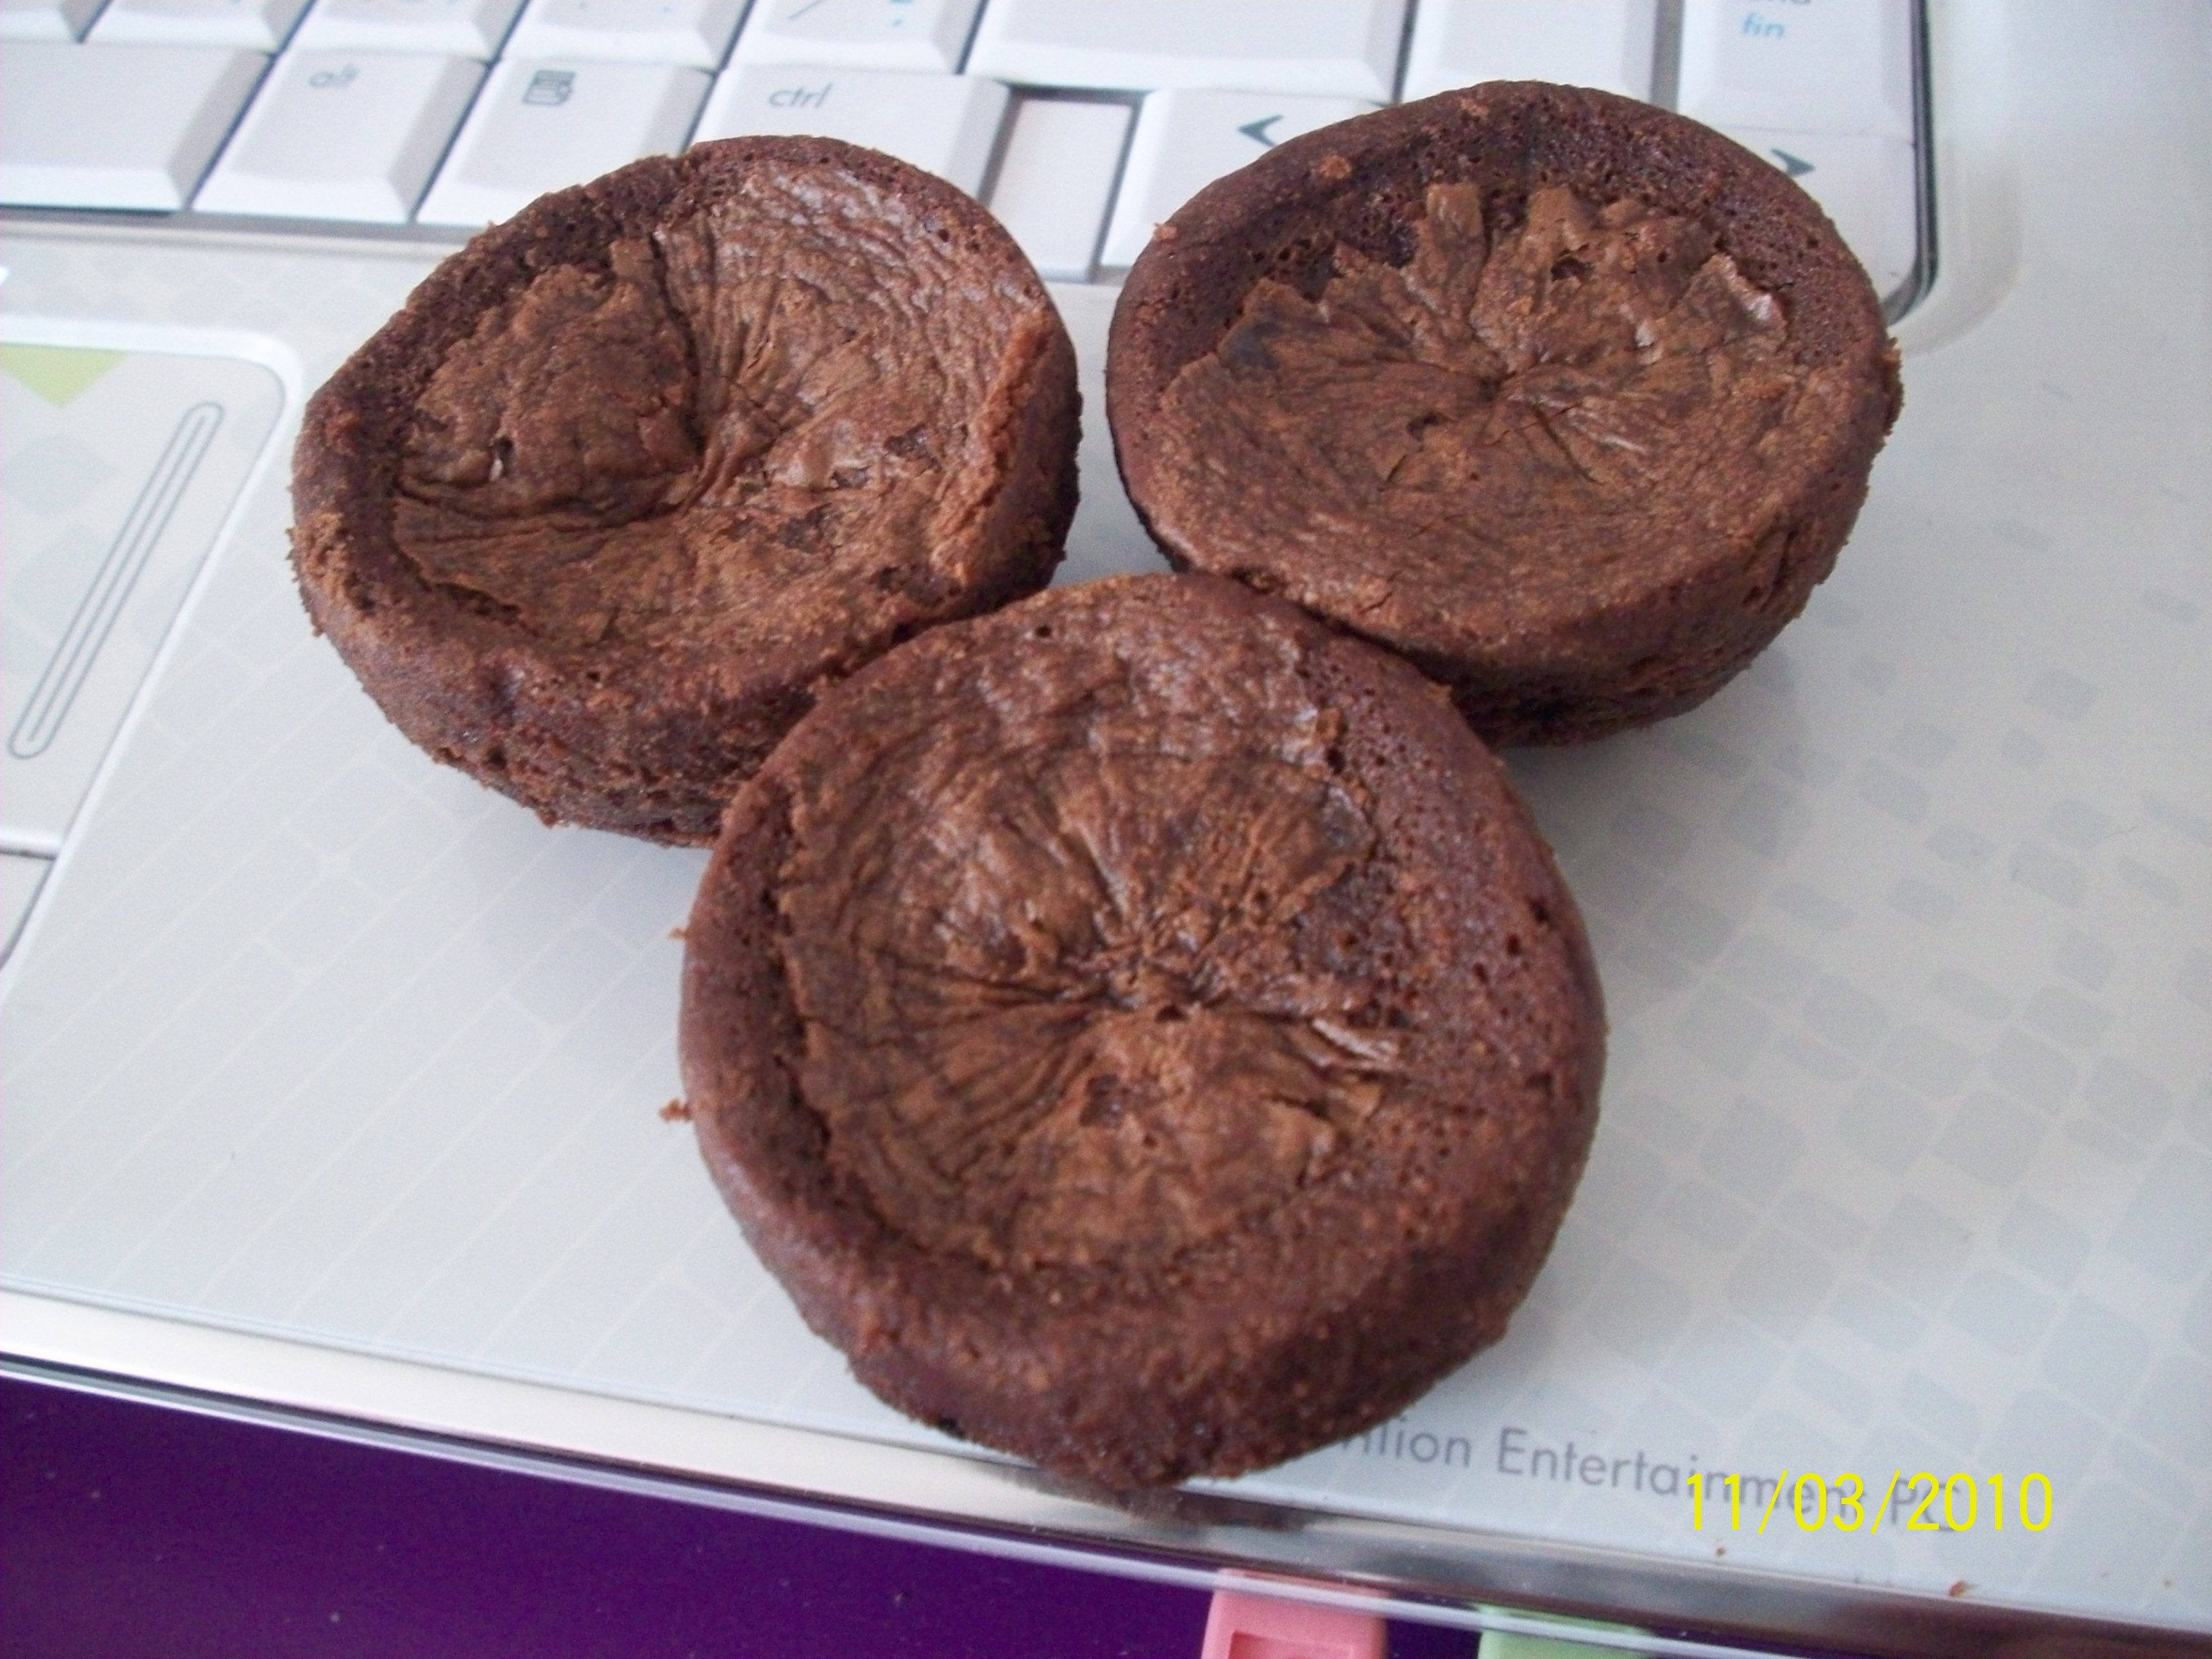 http://foodloader.net/cutie_2010-03-11_Two-Bite_Brownies.jpg